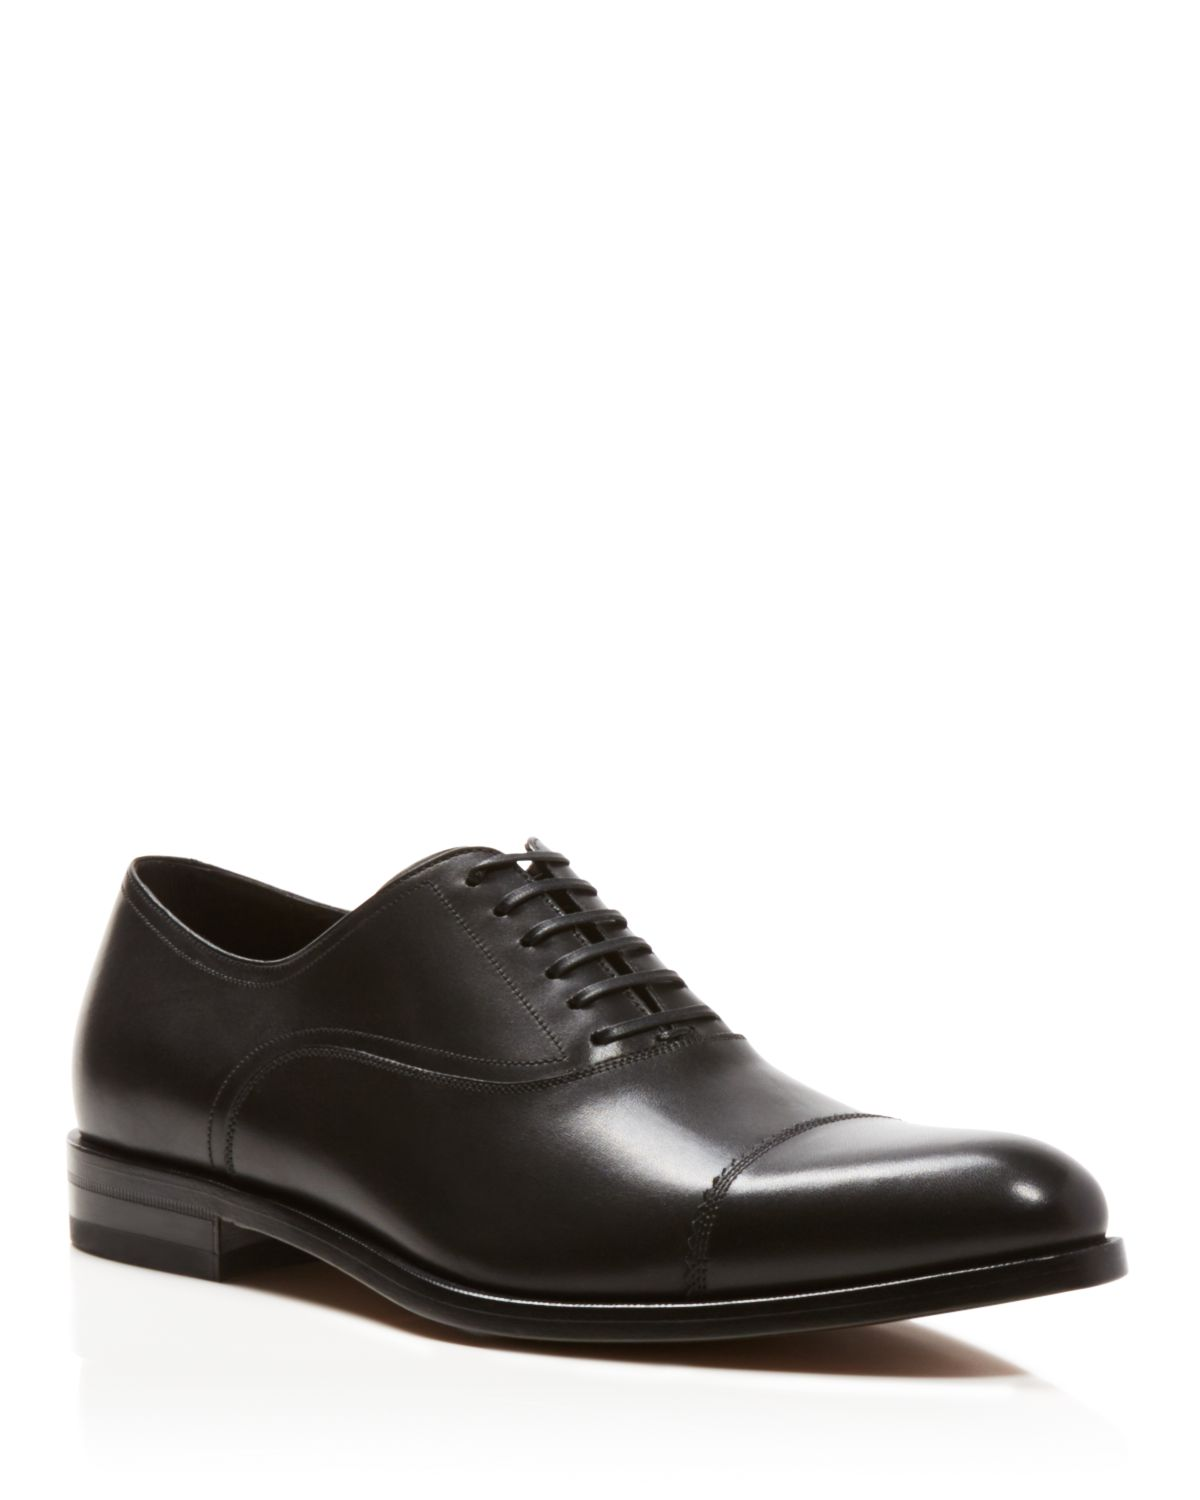 Salvatore Ferragamo Leather Cap-Toe Oxfords